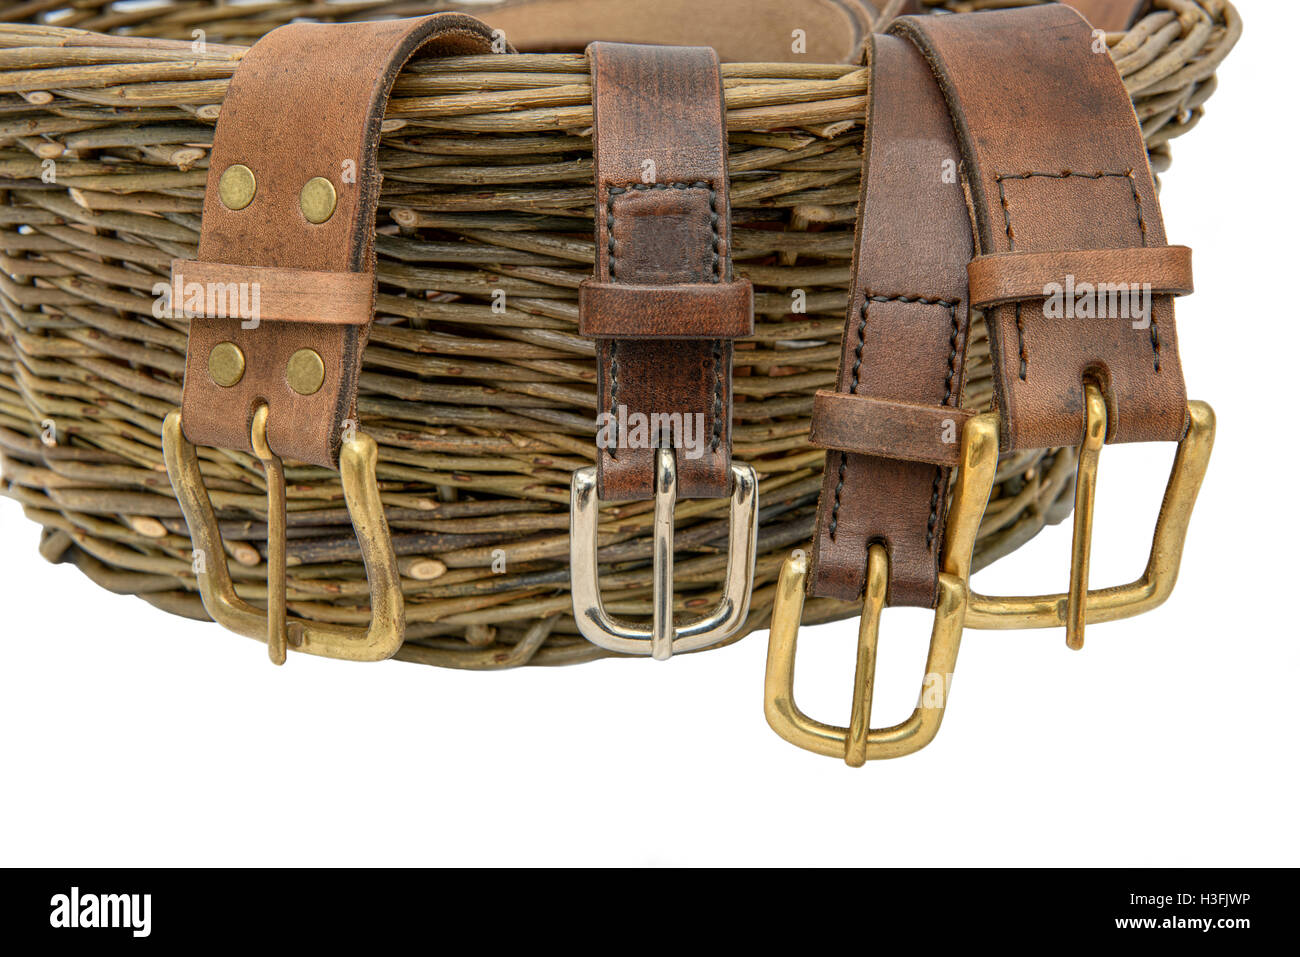 Handmade leather belts with metal buckles arranged over a hand woven willow basket. Isolated against a white background. - Stock Image